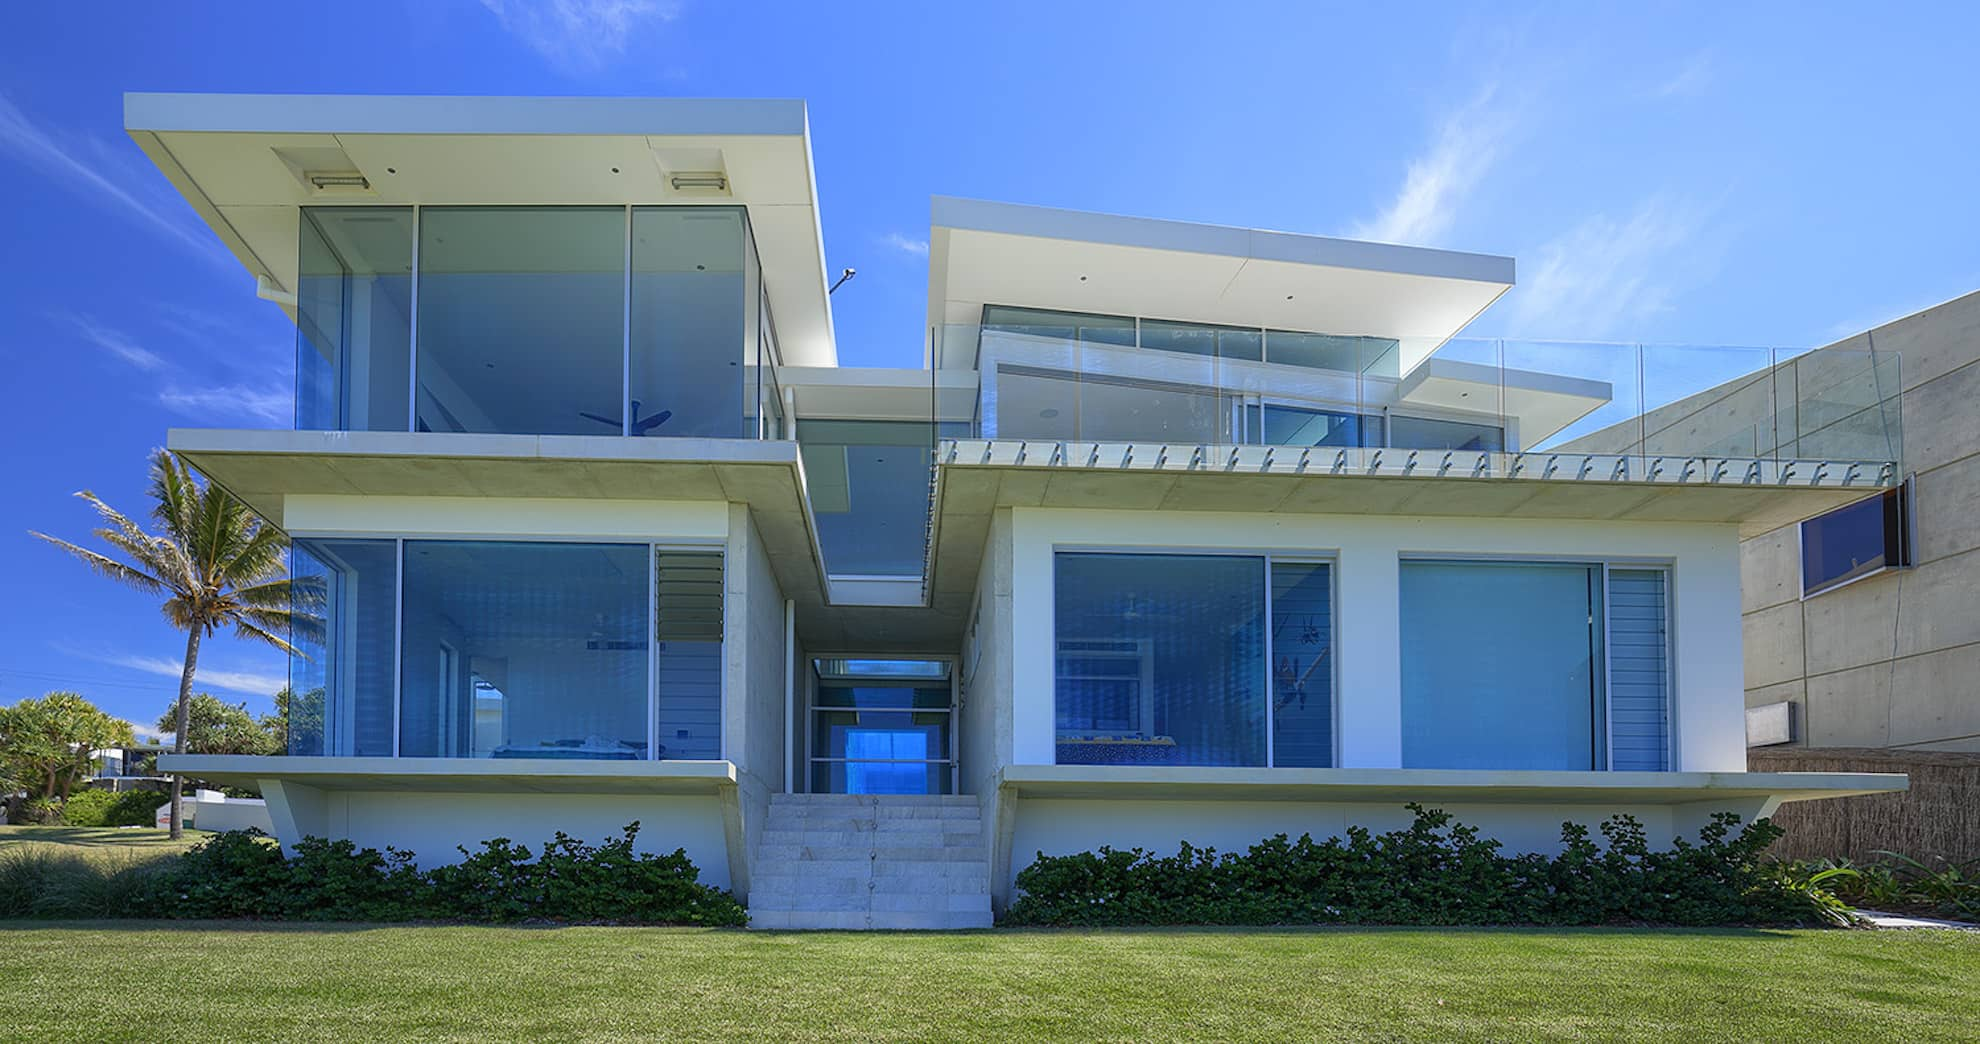 Beaches David Low Way project by mdesign, a building design practice that operates on the Sunshine Coast.